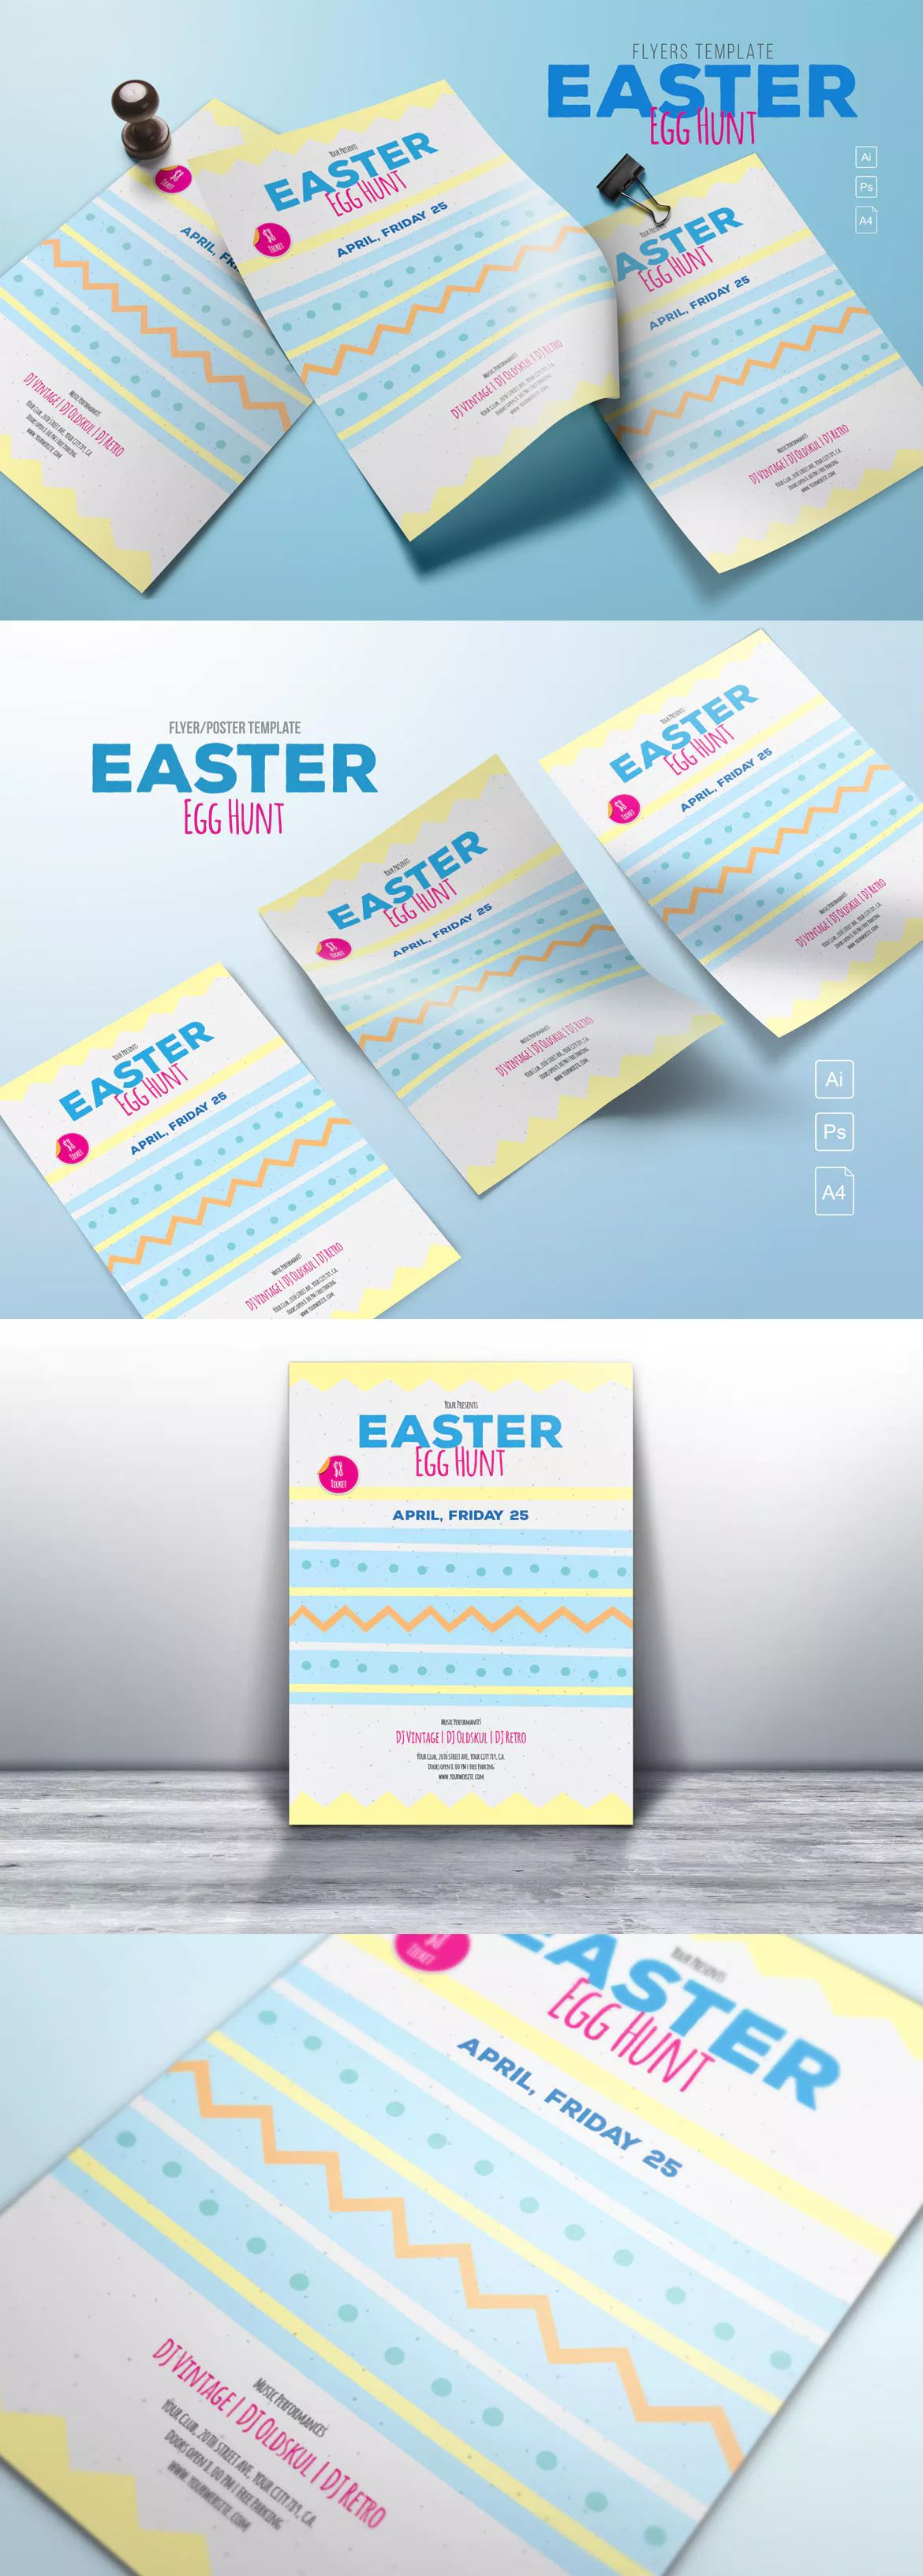 Easter Egg Hunt Flyer Template Ai Psd  Flyer Design Templates